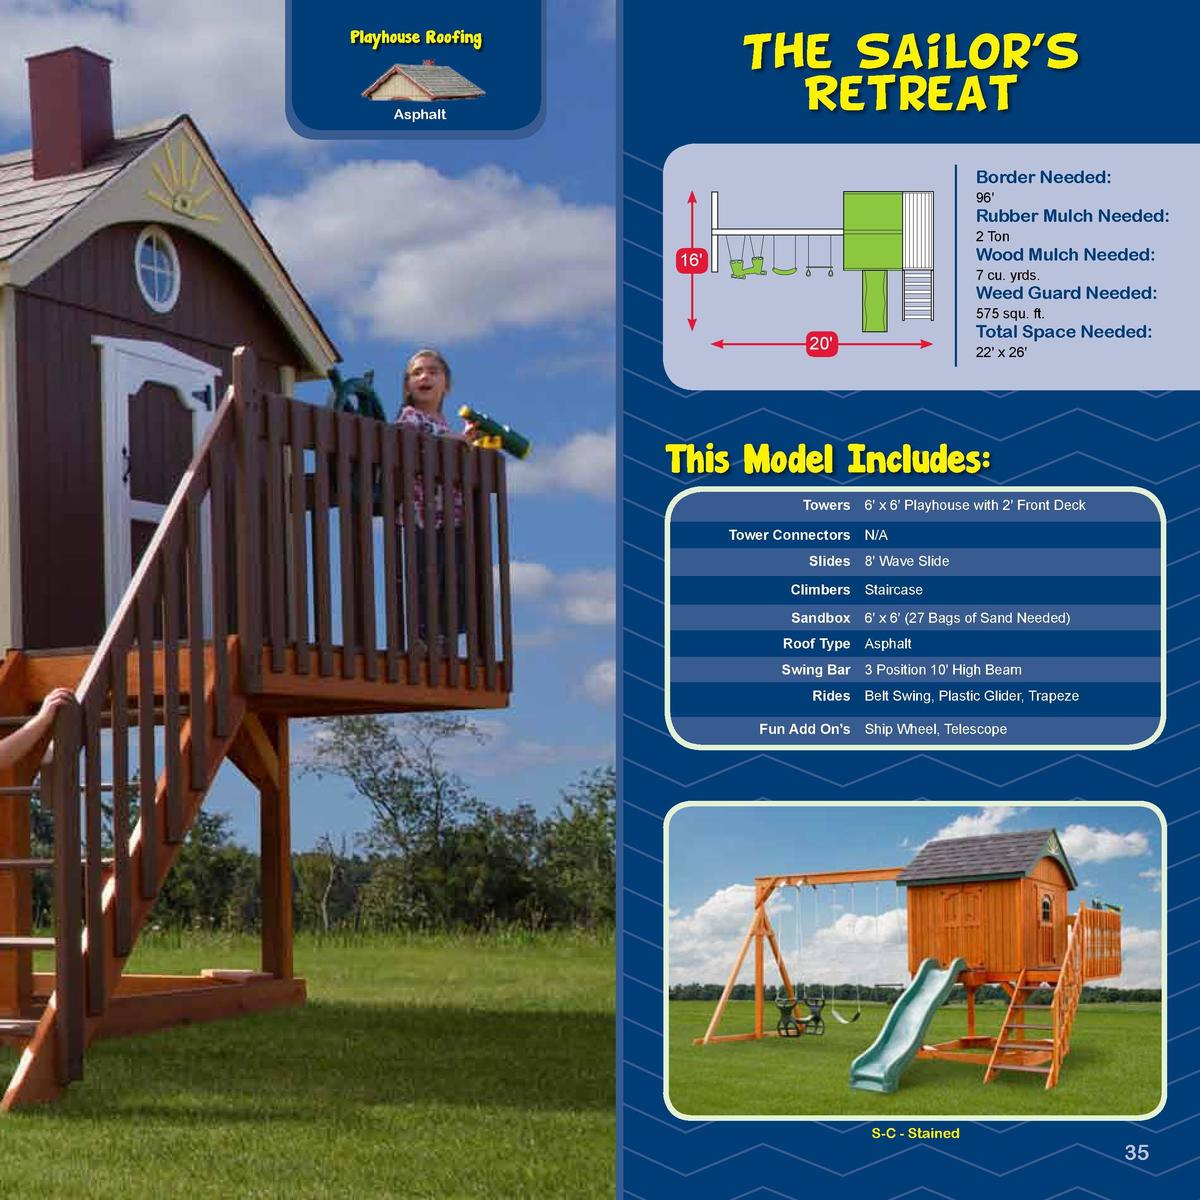 Playhouse Roofing  PIRATE SHIP  The Sailor   s Retreat  -SERIESAsphalt  Border Needed   Space Needed 96  Rubber Mulch Need...